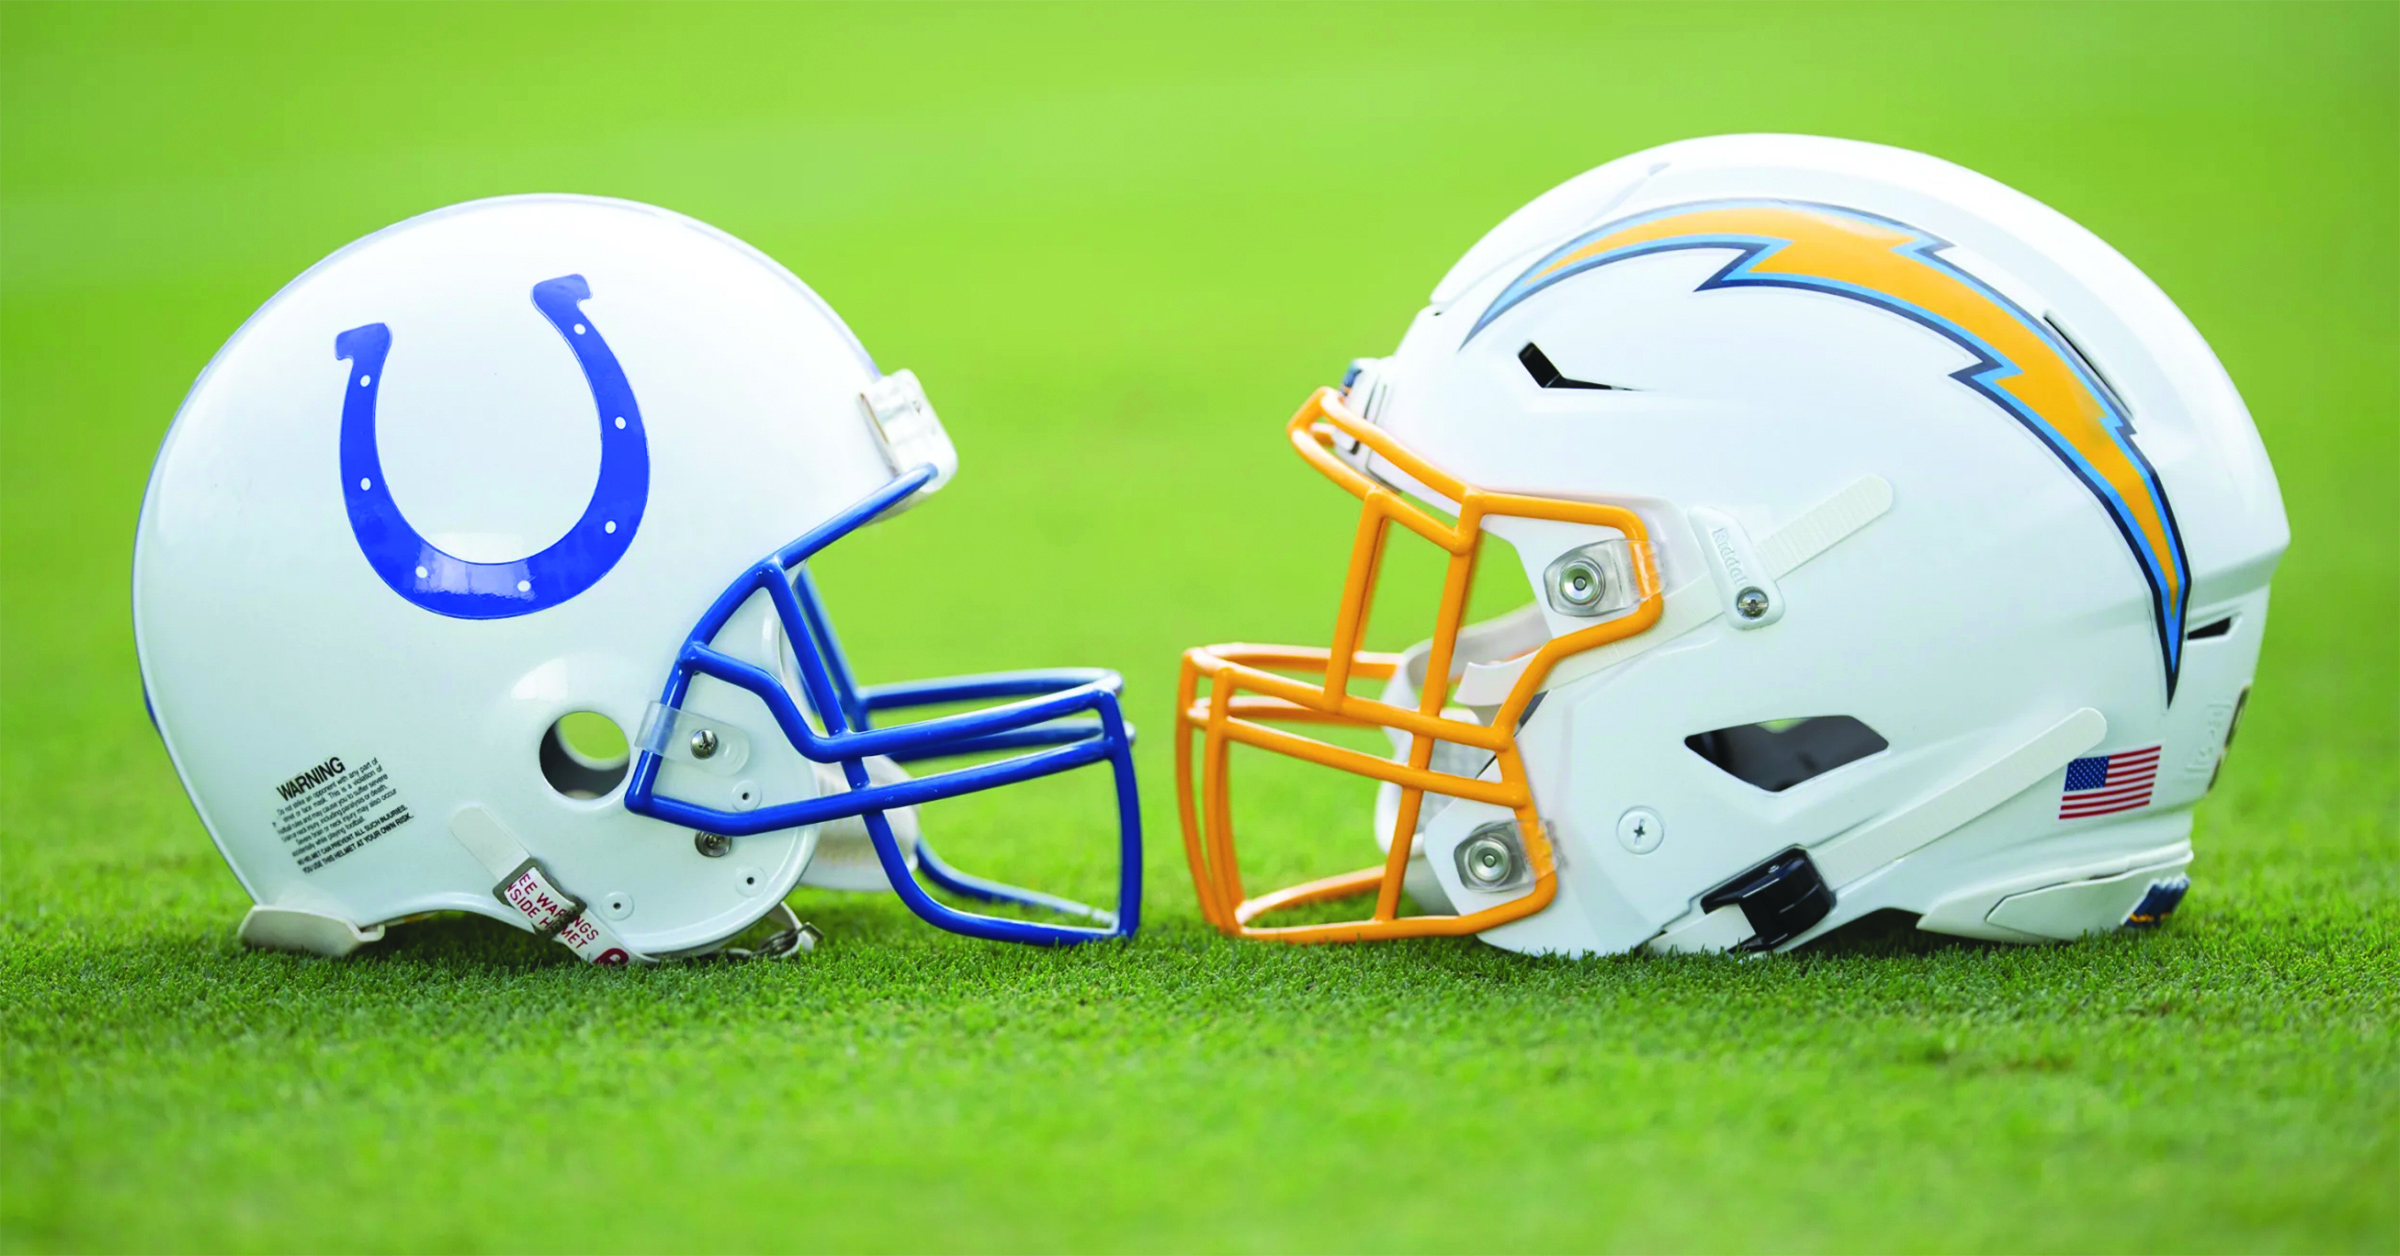 The Los Angeles Chargers return to regular season action as they take on the Indianapolis Colts on Sunday, Sept. 8. (Chargers.com Courtesy Photo)